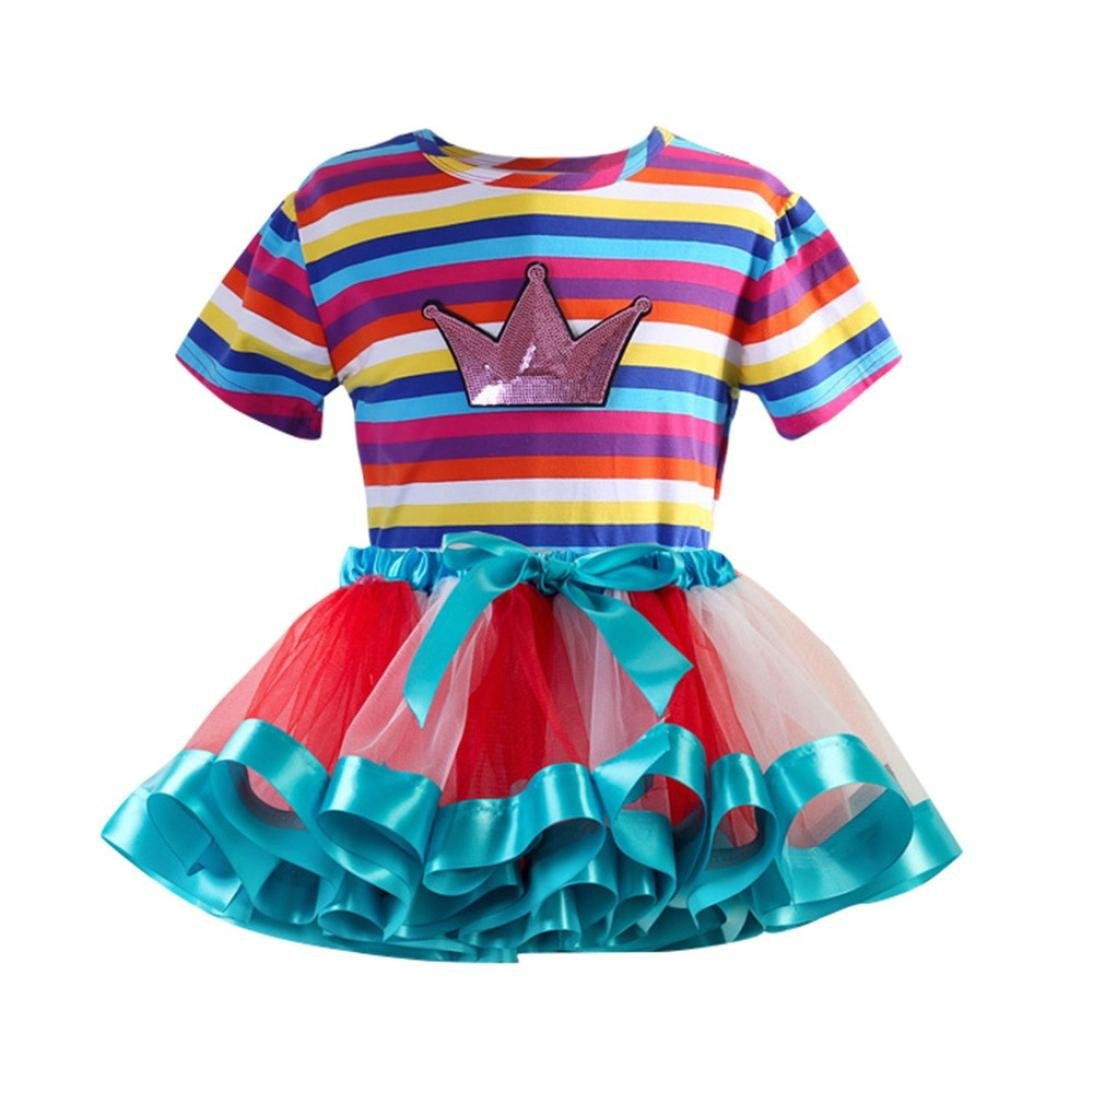 Hatoys 2PC Rainbow Top + Tutu Skirt Party Outfit Skirt Set (S, Blue)